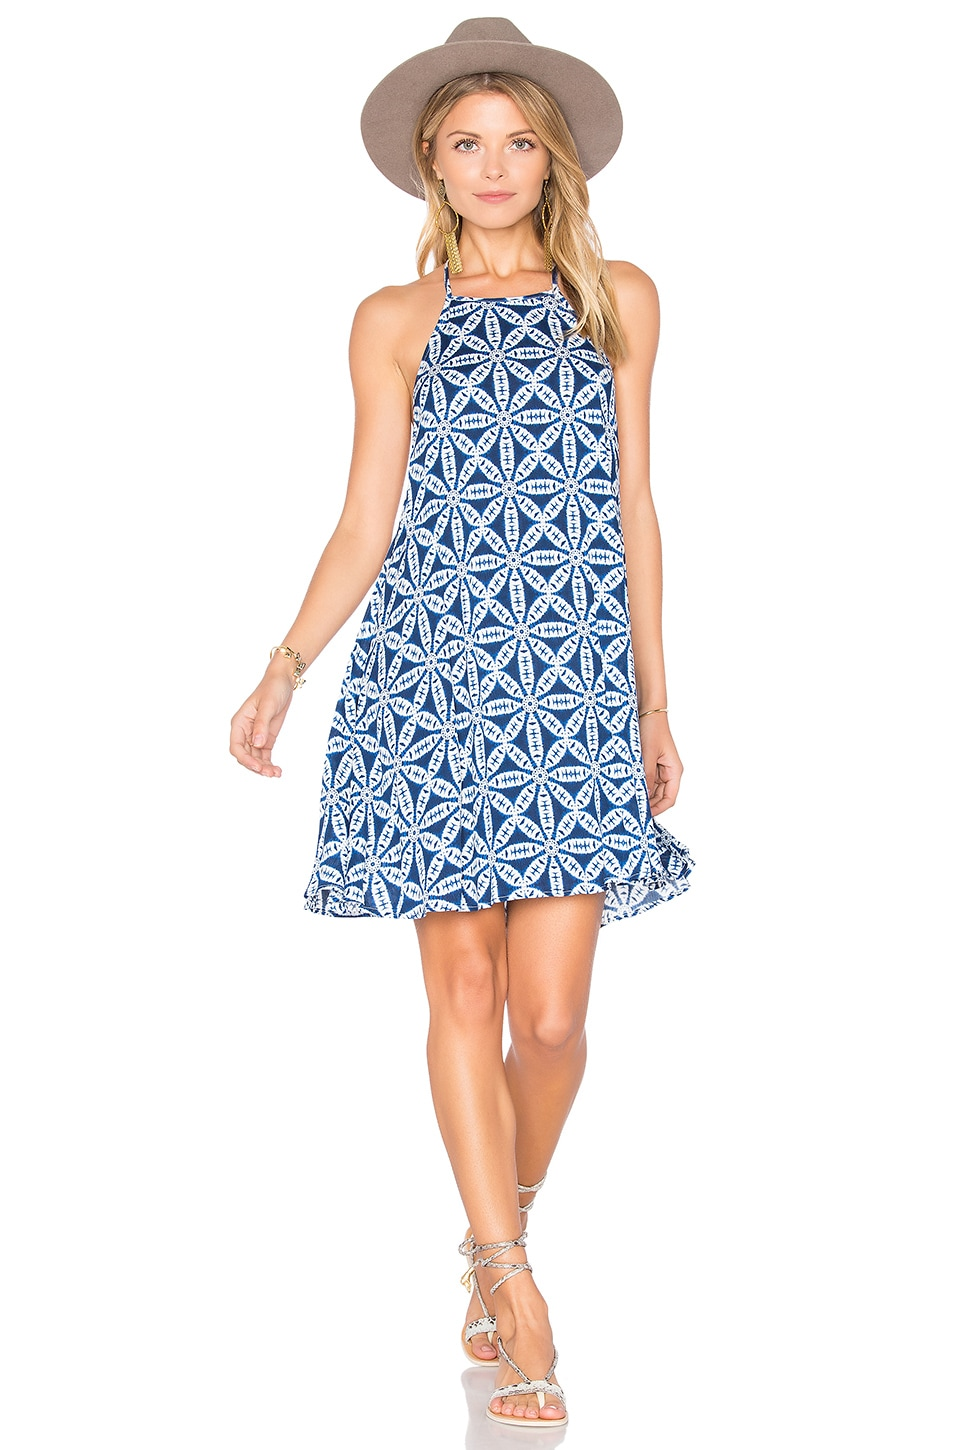 Katy Halter Dress by Show Me Your Mumu